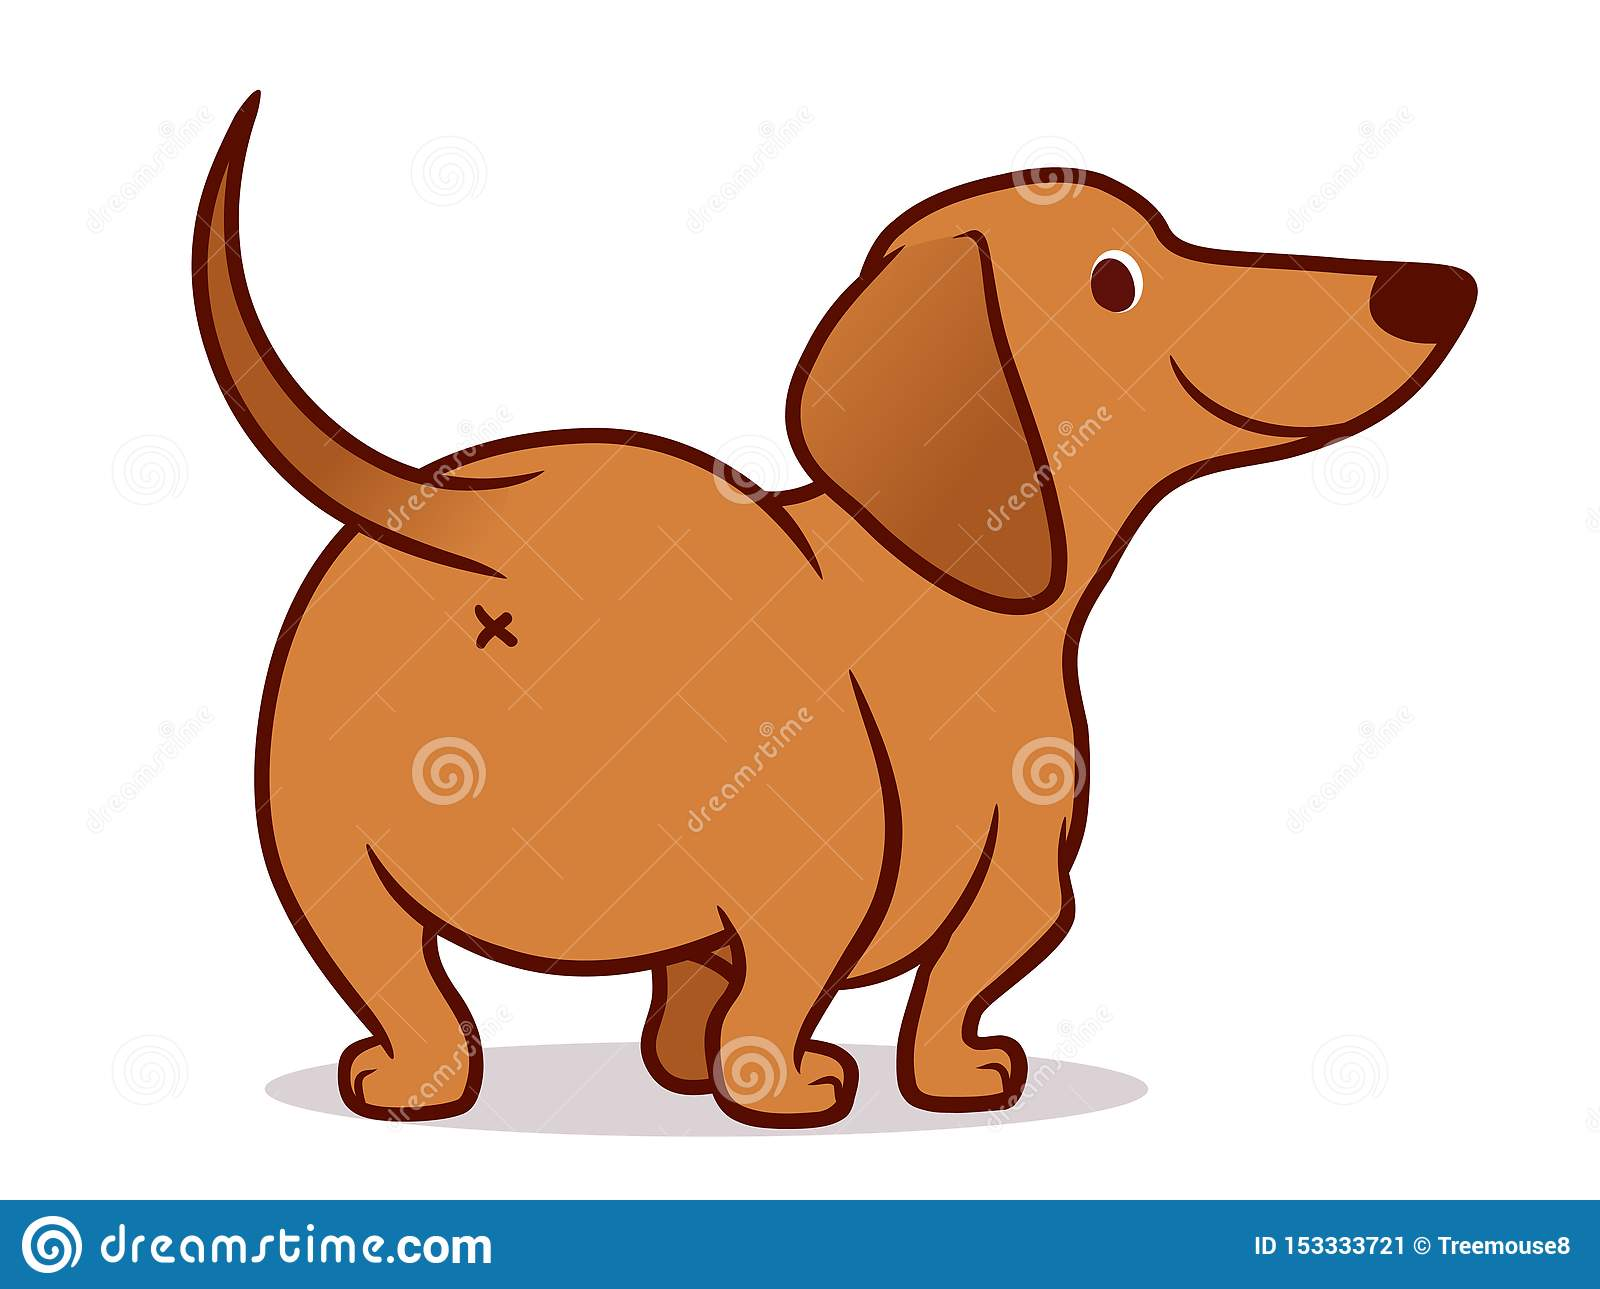 Cute Wiener Sausage Dog Cartoon Illustration Isolated On White Simple Drawing Of Friendly Tan Dachshund Puppy Rear View Stock Illustration Illustration Of Domestic Smooth 153333721